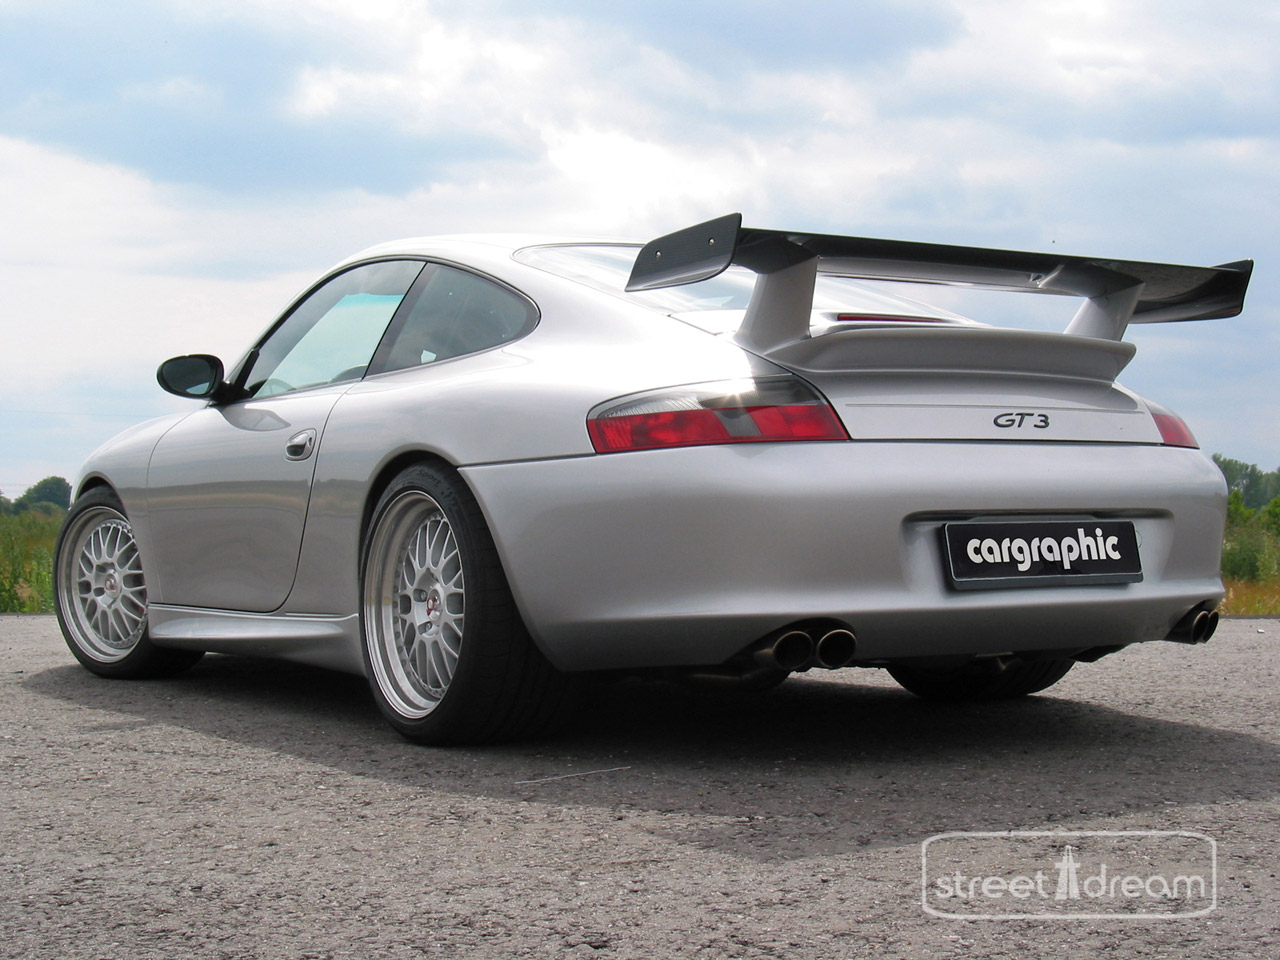 Cargraphic Porsche 996 Gt3 Photos Photogallery With 3 HD Style Wallpapers Download free beautiful images and photos HD [prarshipsa.tk]